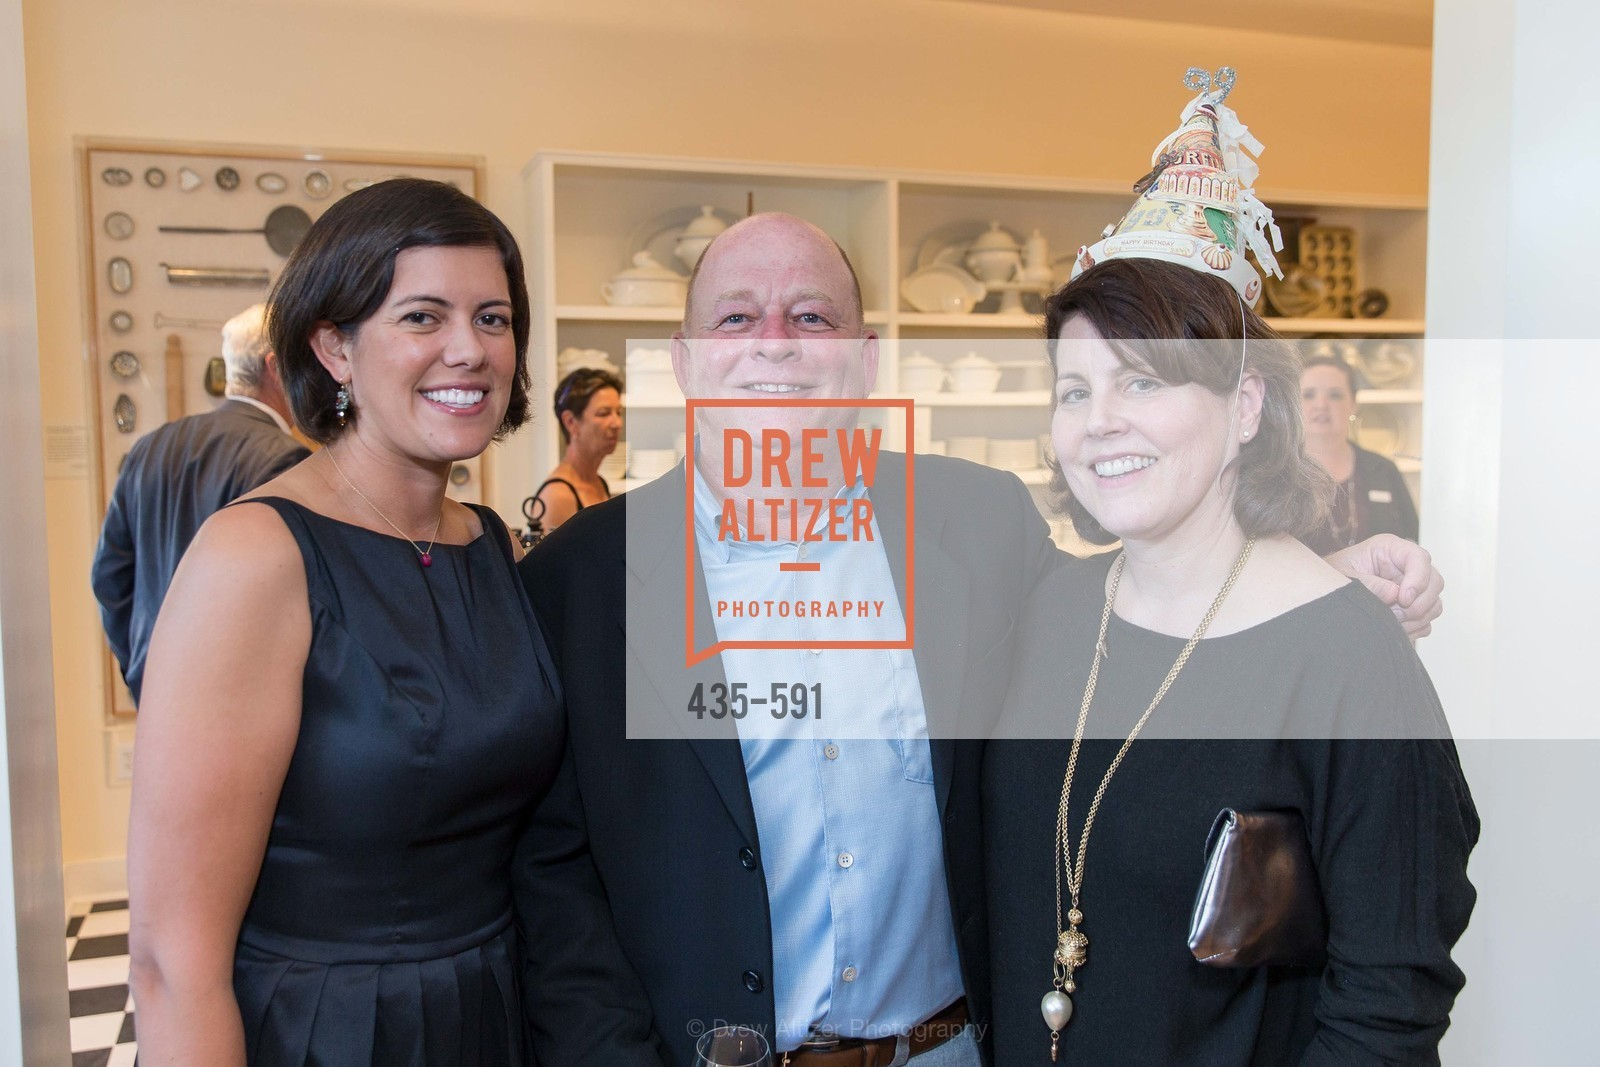 Maria Reilly, Sean Callaway, Sandy Peterson, CHUCK WILLIAMS Birthday Celebration, US, October 2nd, 2014,Drew Altizer, Drew Altizer Photography, full-service agency, private events, San Francisco photographer, photographer california